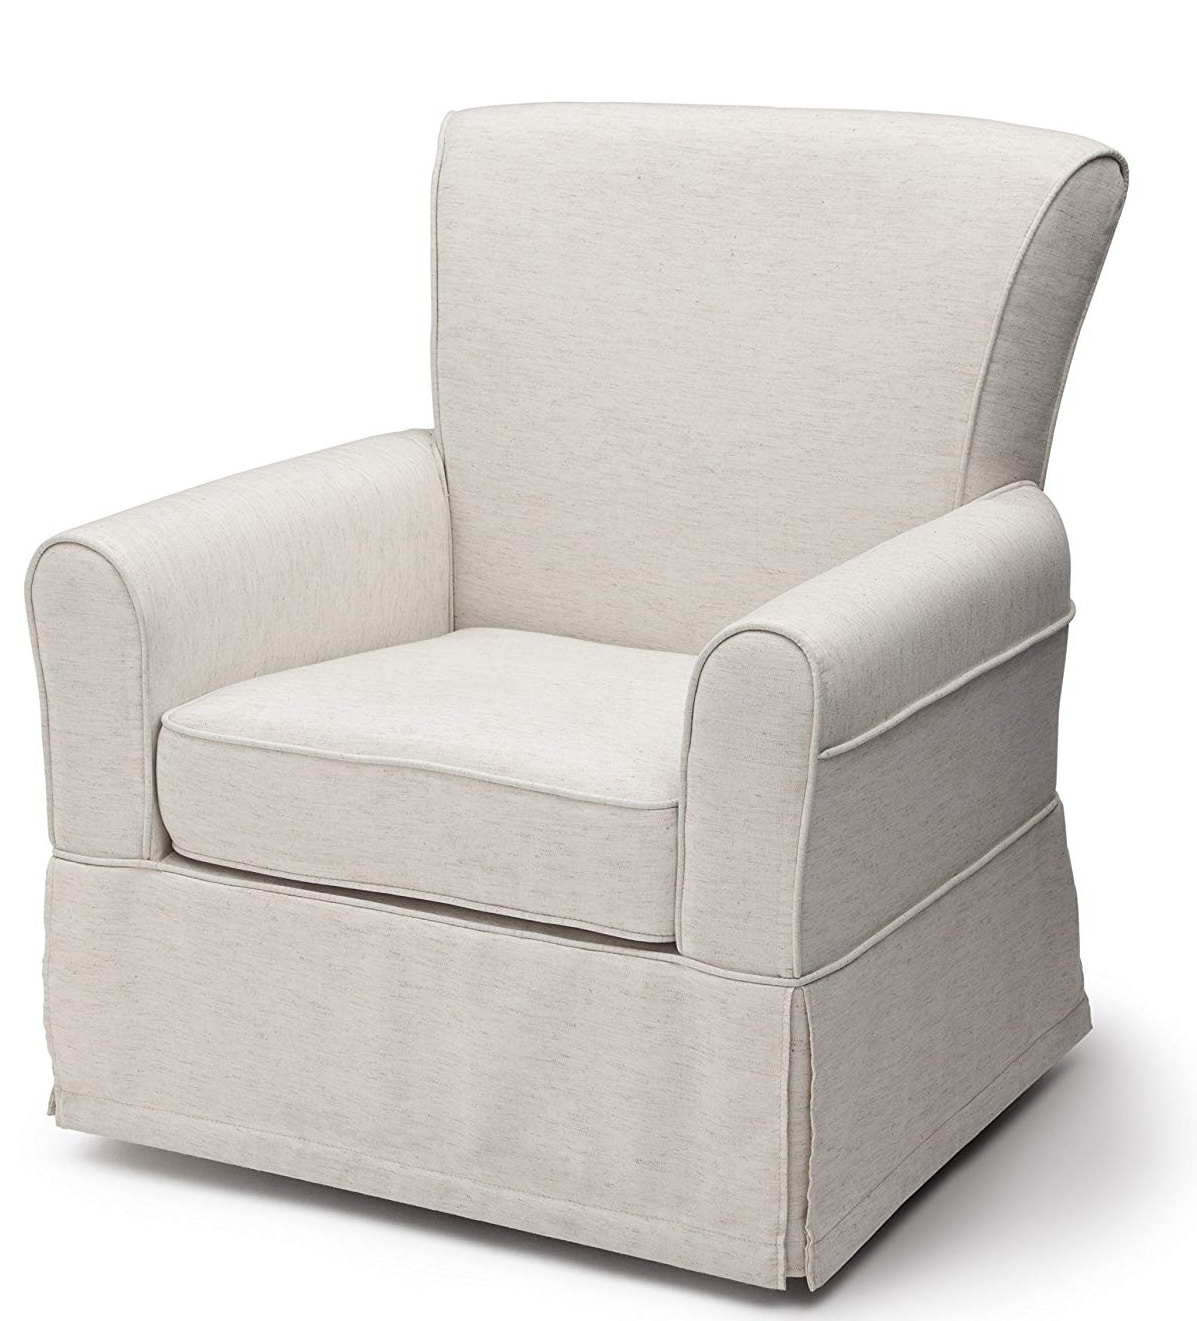 Delta Children Sand Upholstered Chair